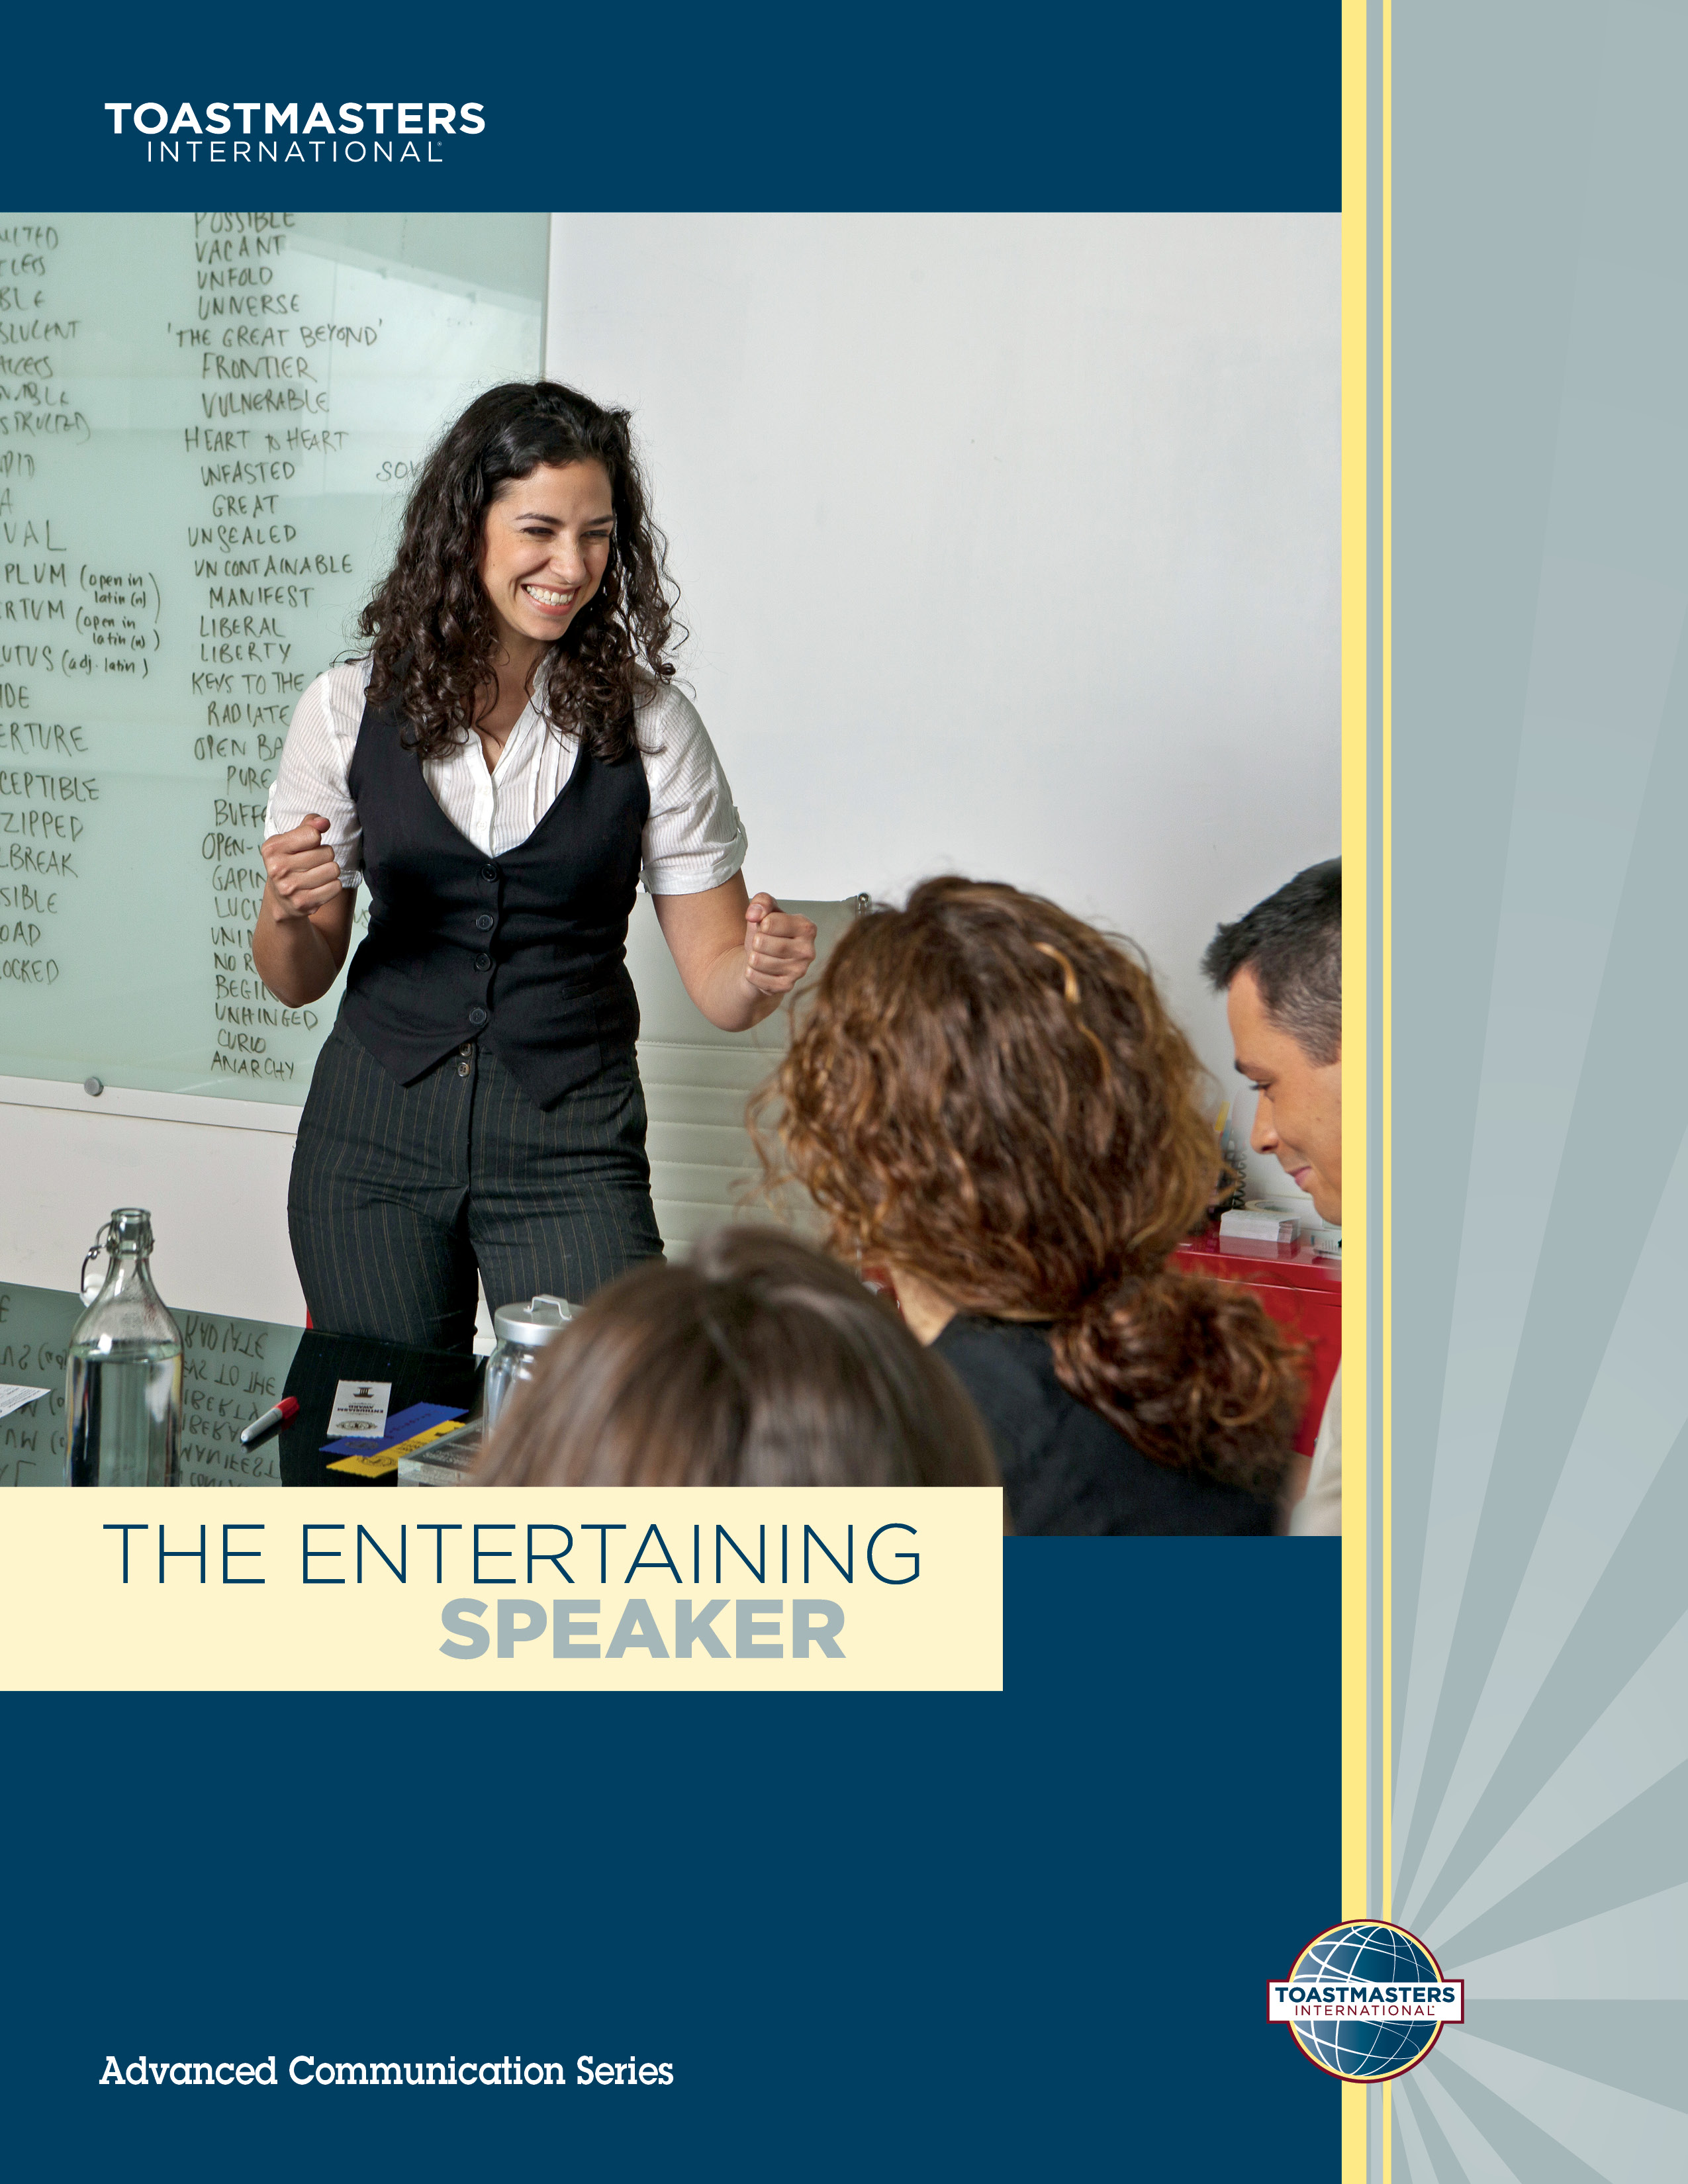 The Entertaining Speaker Manual